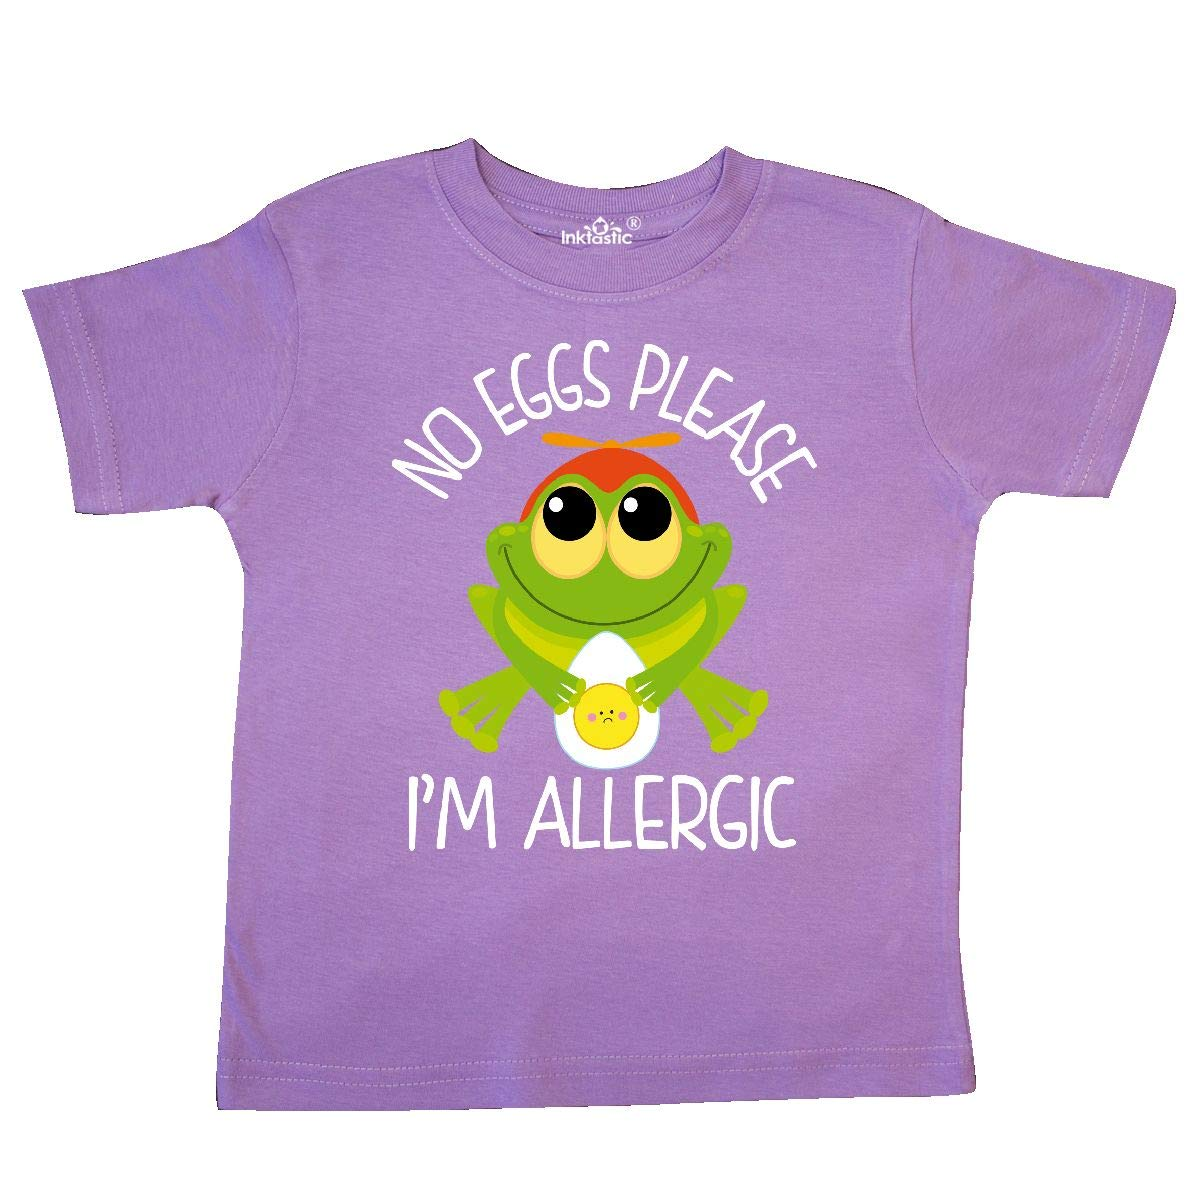 inktastic Allergic to Eggs Toddler T-Shirt